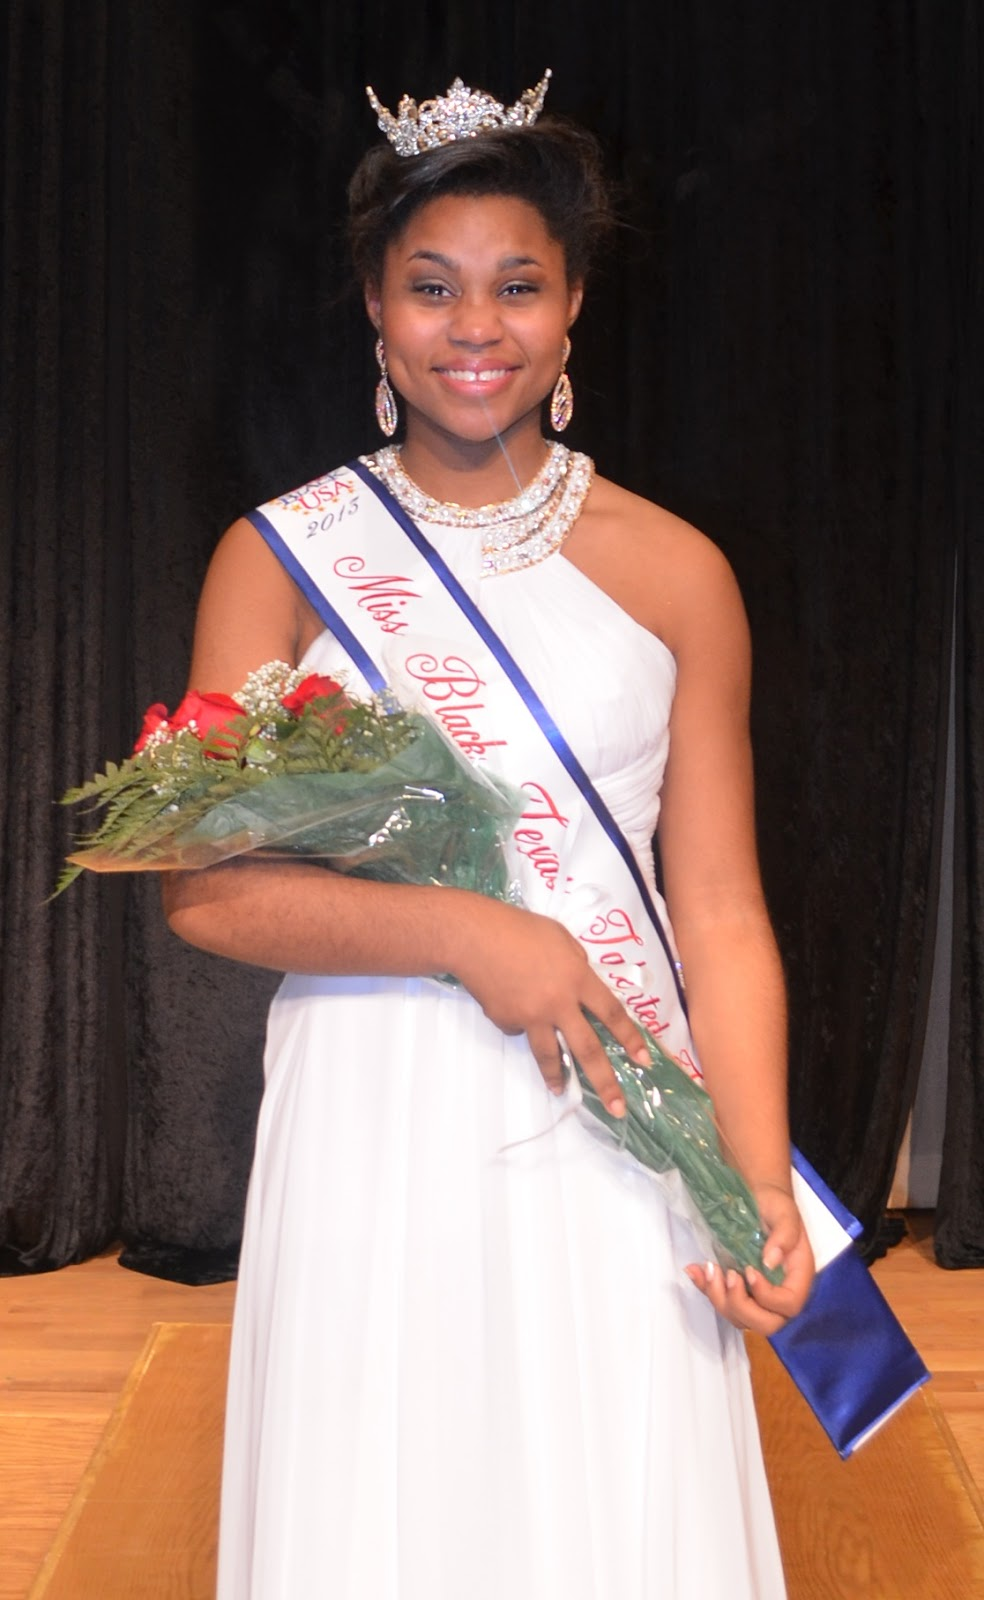 chan.ru preteen Chandler Foreman received the surprise of her life when she was named Miss Black Texas USA Talented Teen 2013. In her very first pageant, she stole the ...